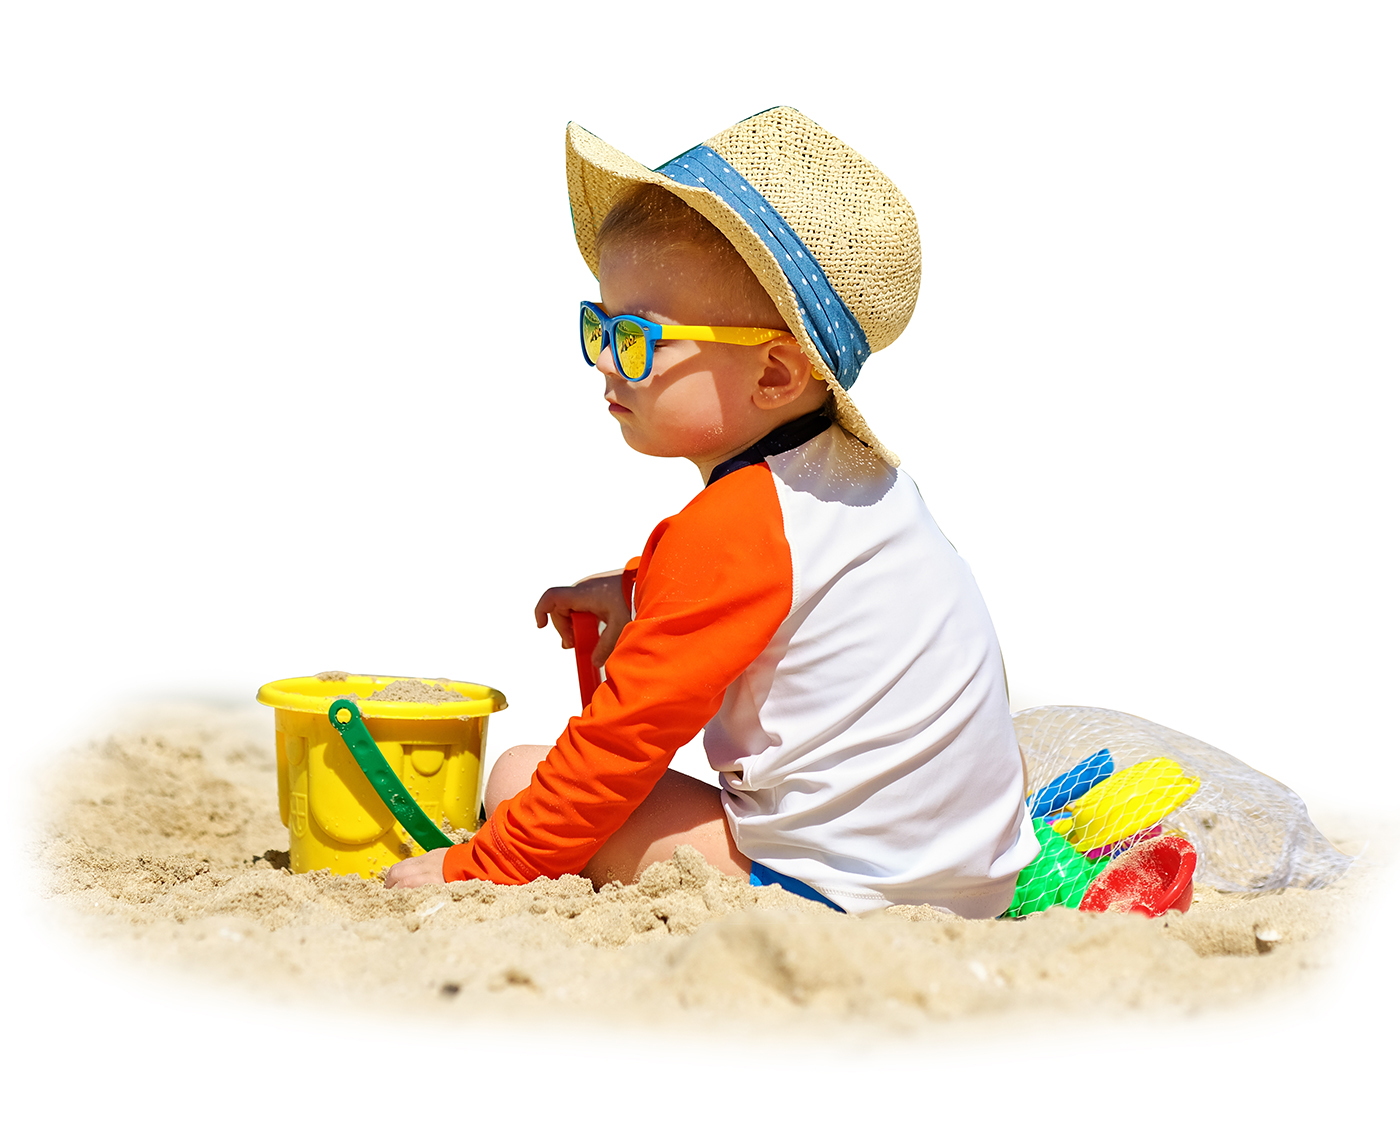 Two-year-old toddler boy playing with beach toys on beach